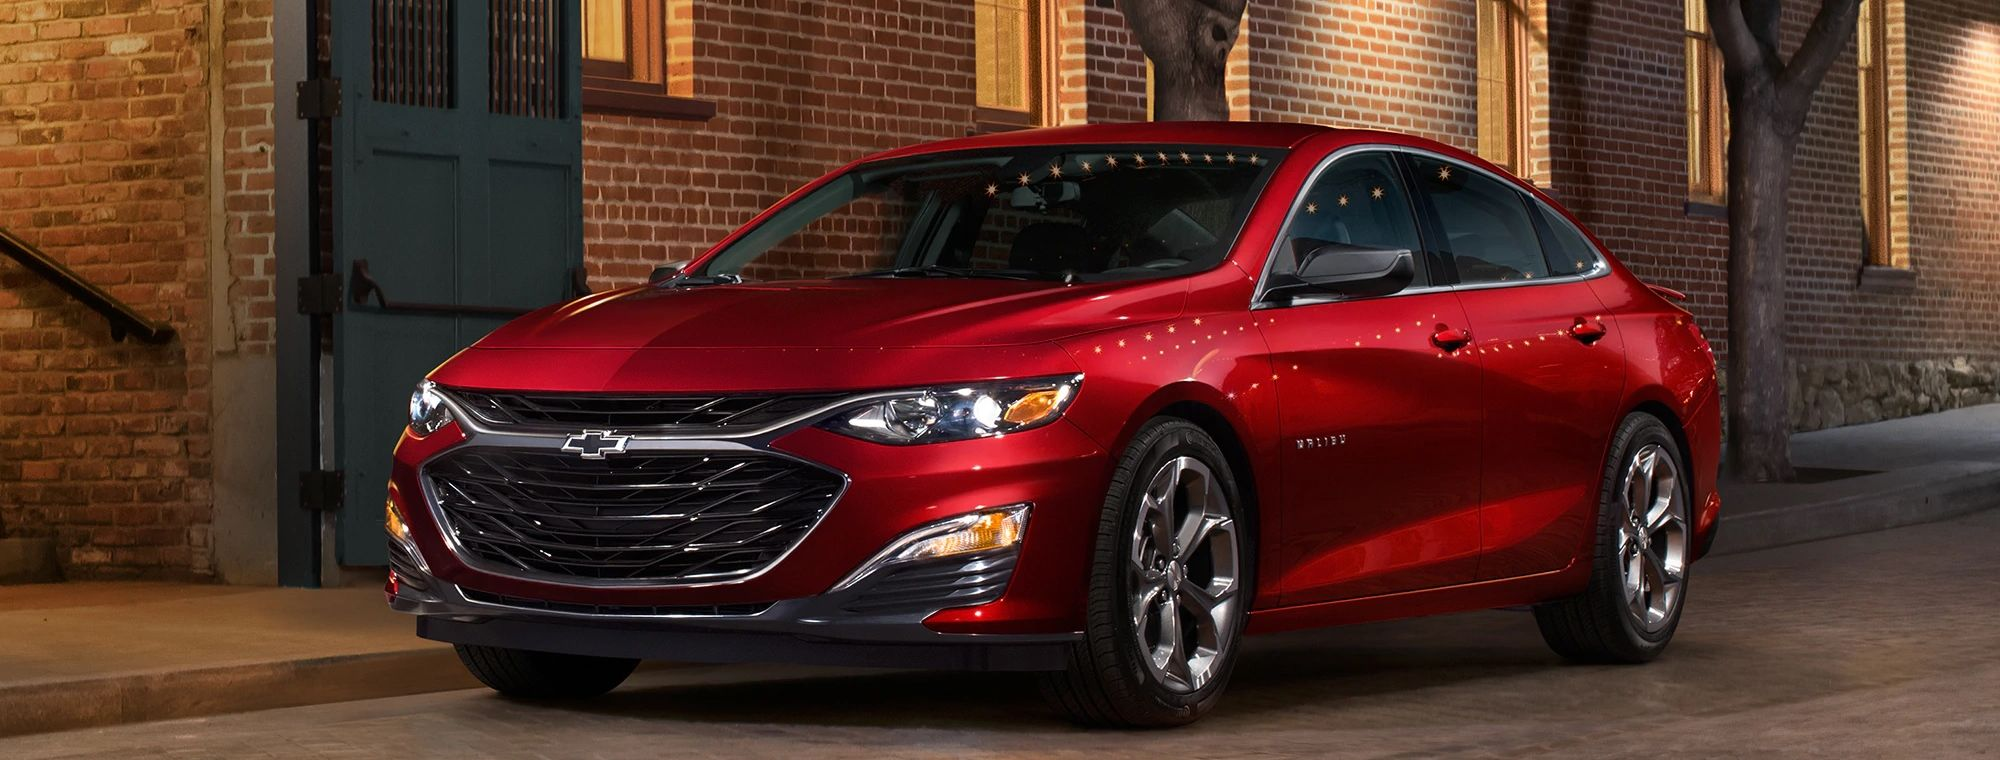 2019 Chevrolet Malibu Financing near Schererville, IN